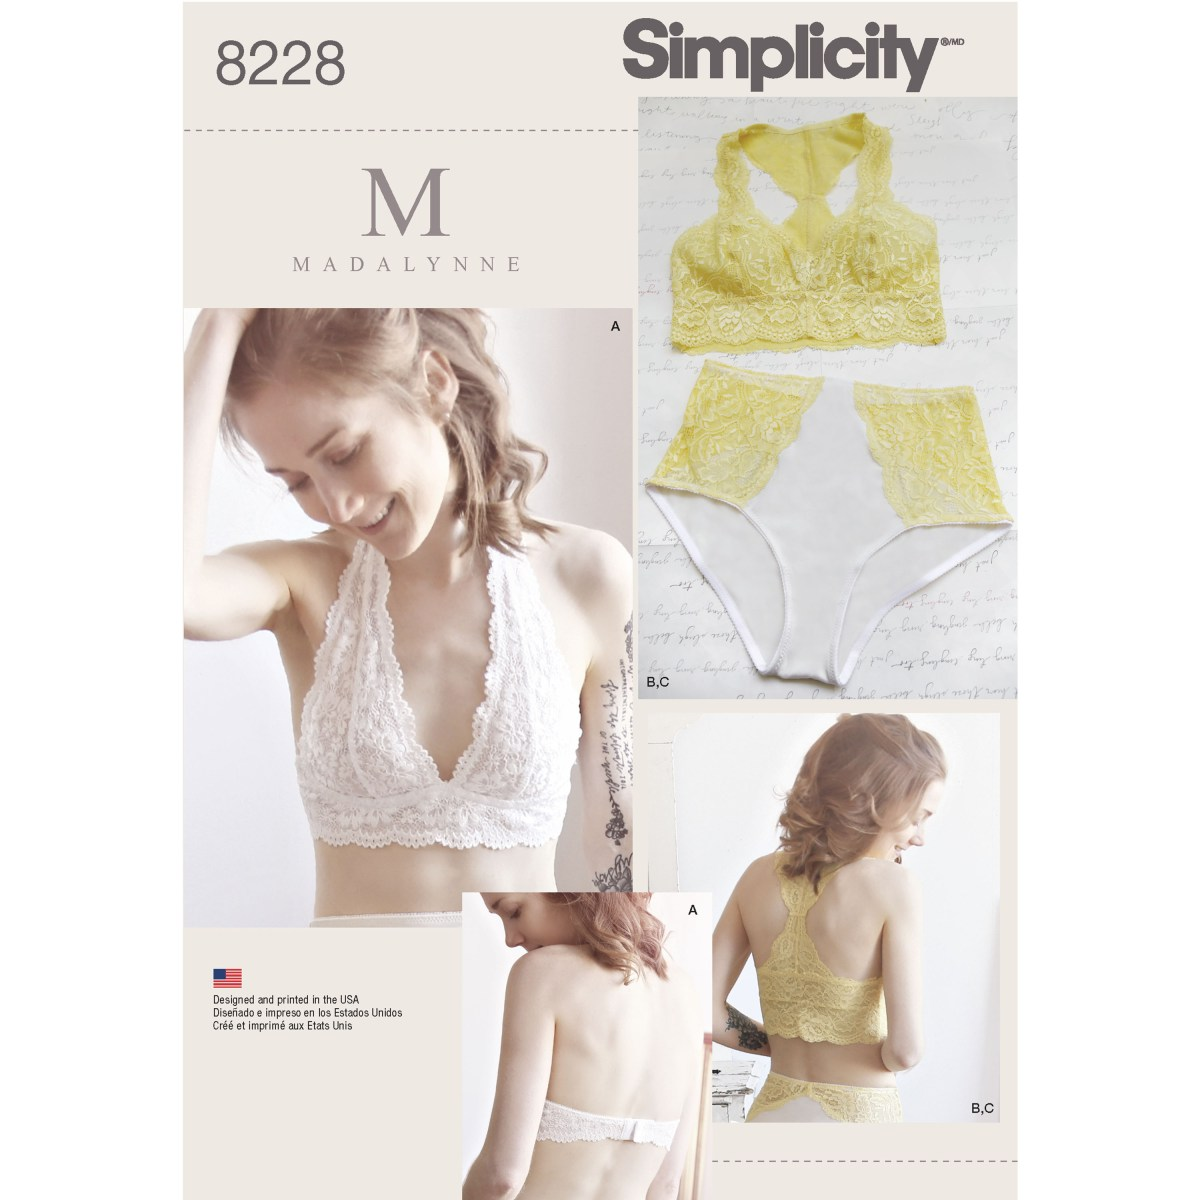 Bra Sewing Patterns Simplicity Pattern 8228 Womens Soft Cup Bras And Knickers